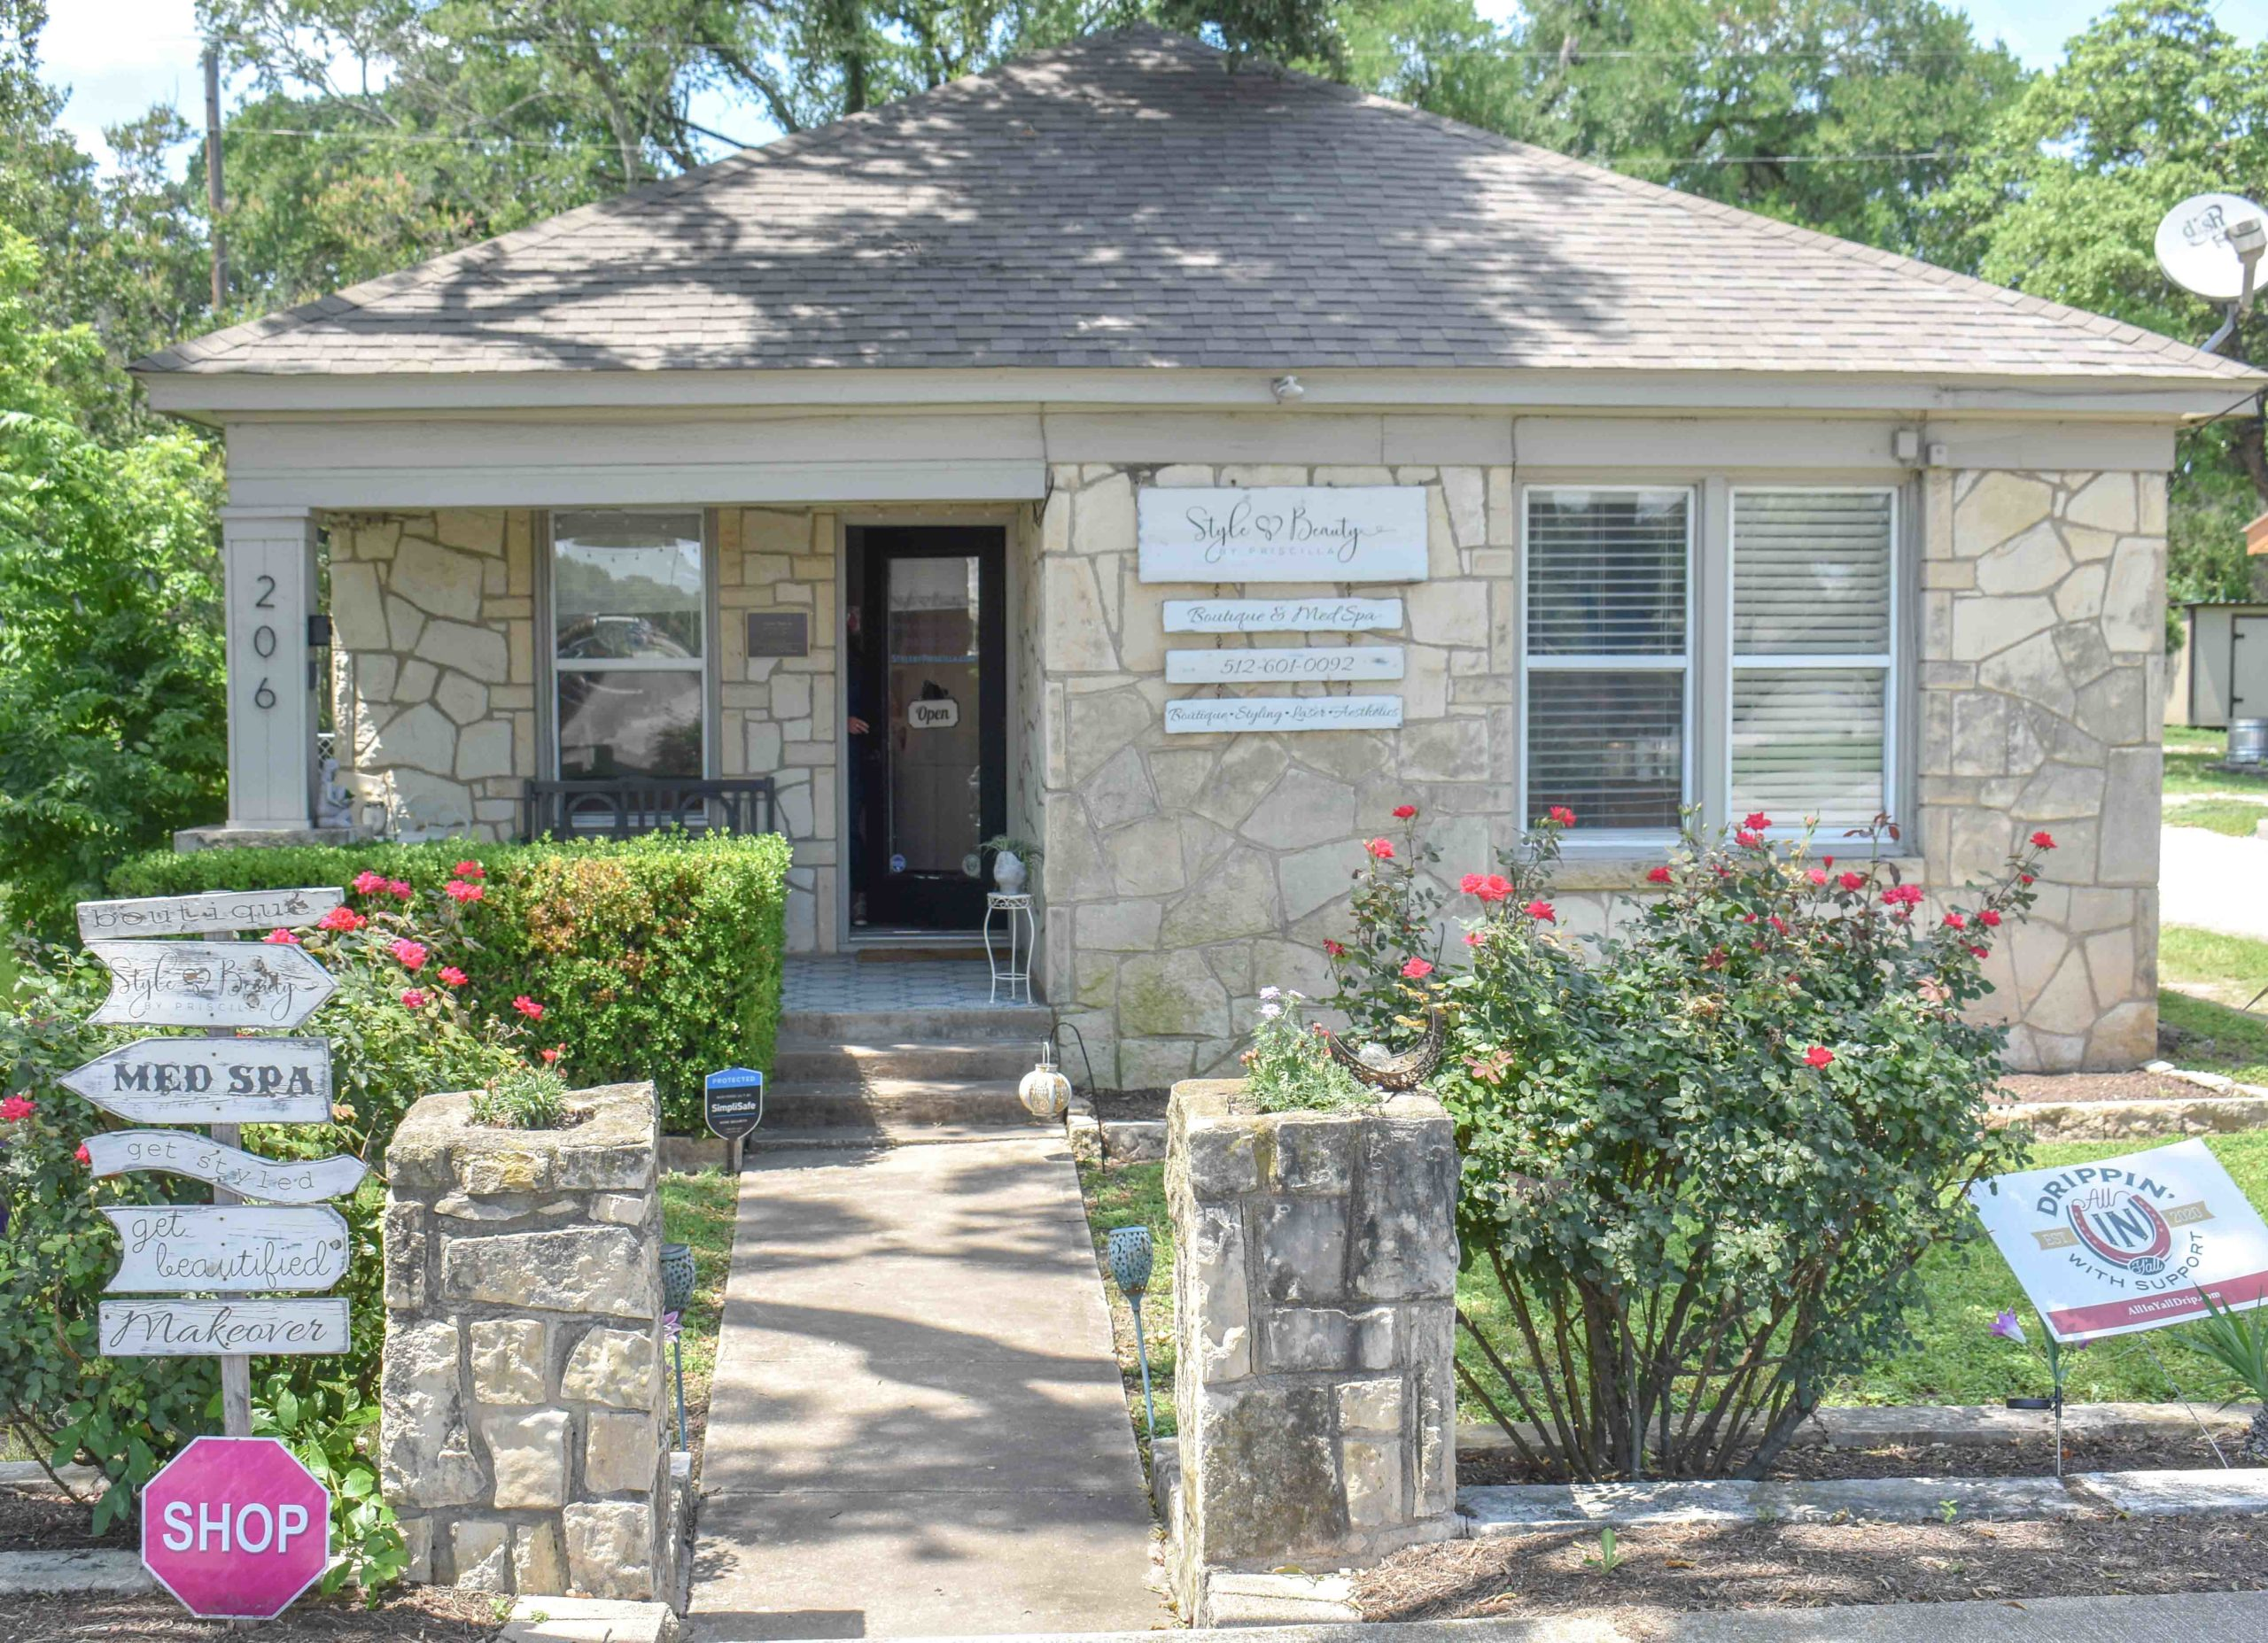 Front of Style and Beauty by Priscilla Medspa in Dripping Springs